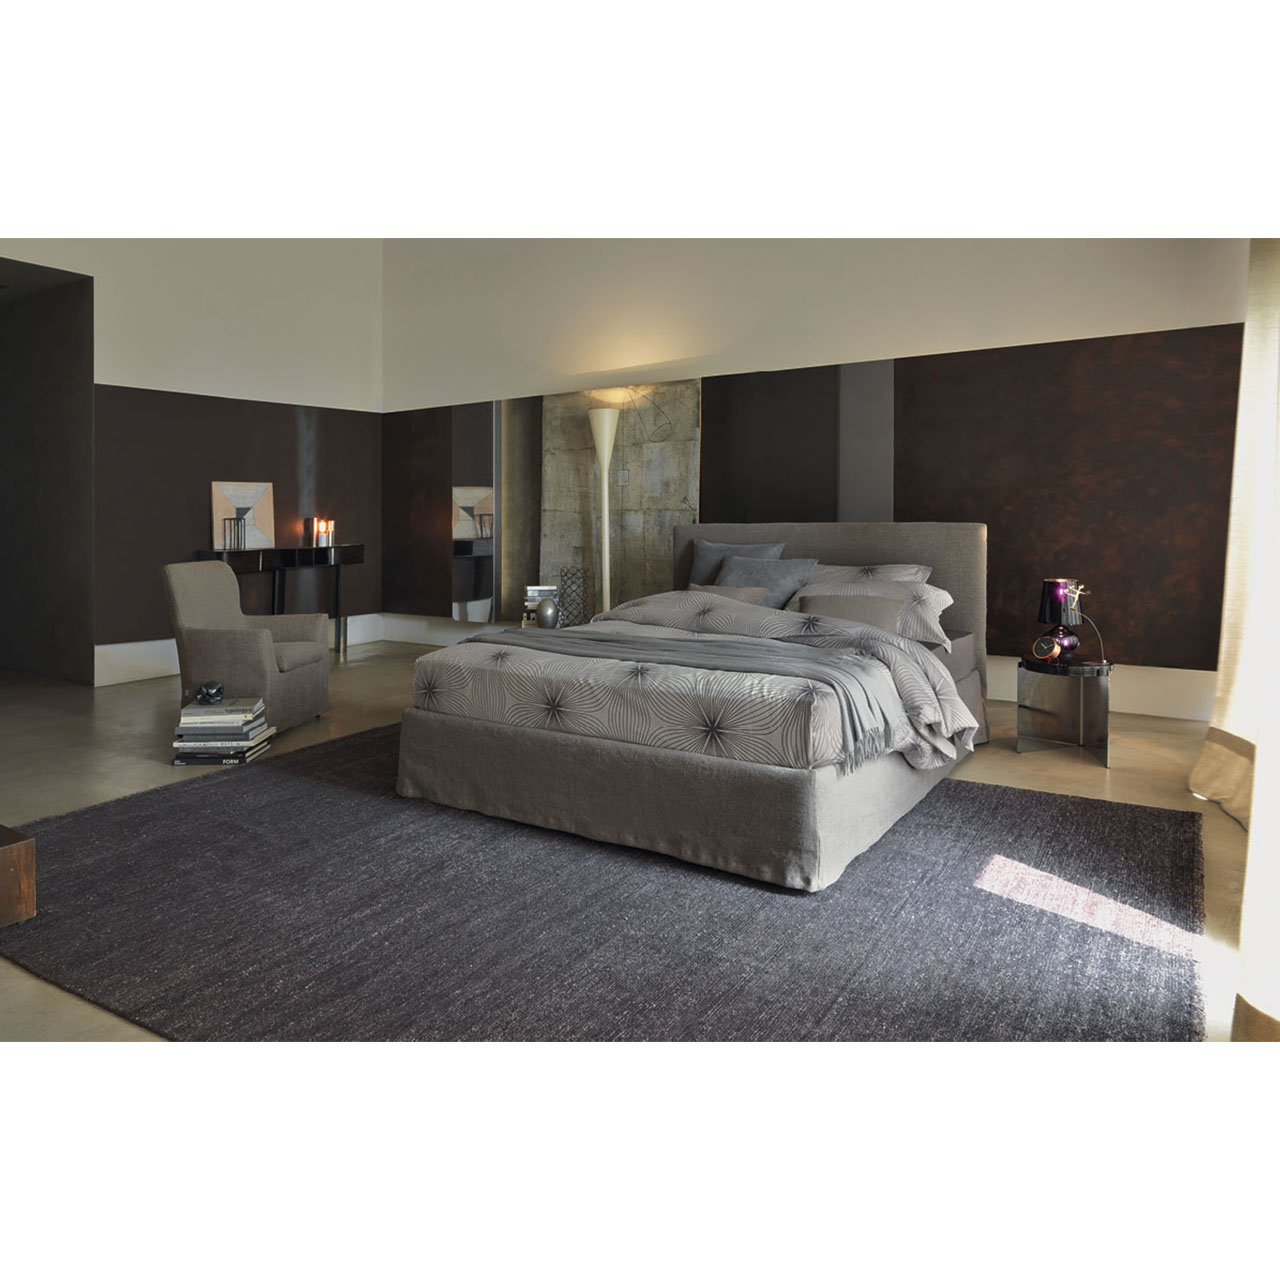 Flou Letto Notturno Shabby Chic Longho Design Concept Store